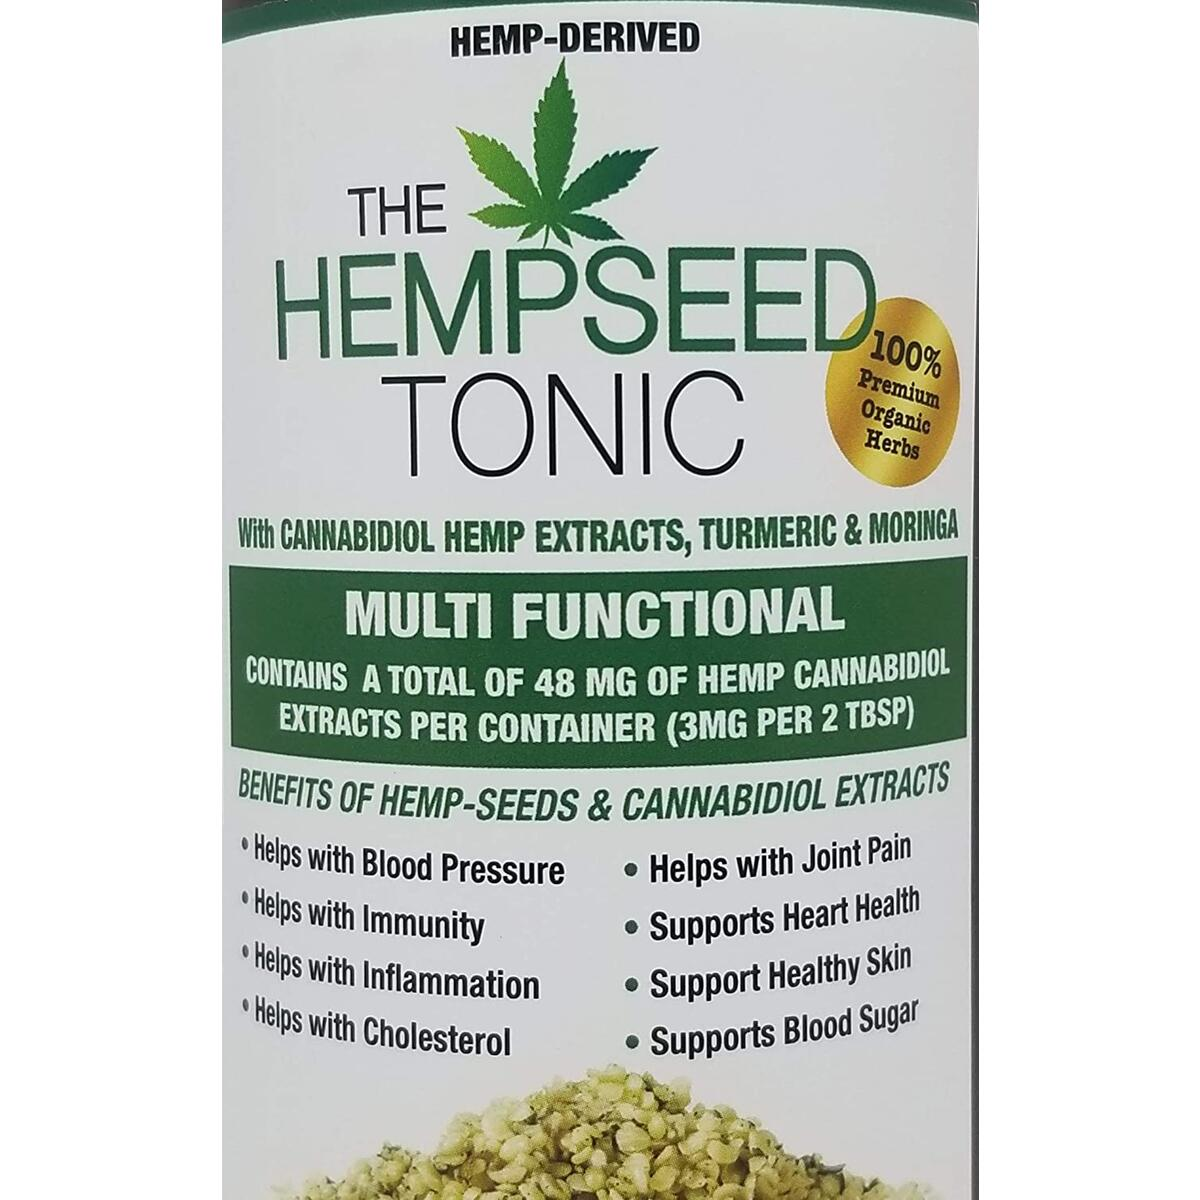 The HEMPSEED Tonic (3PK)